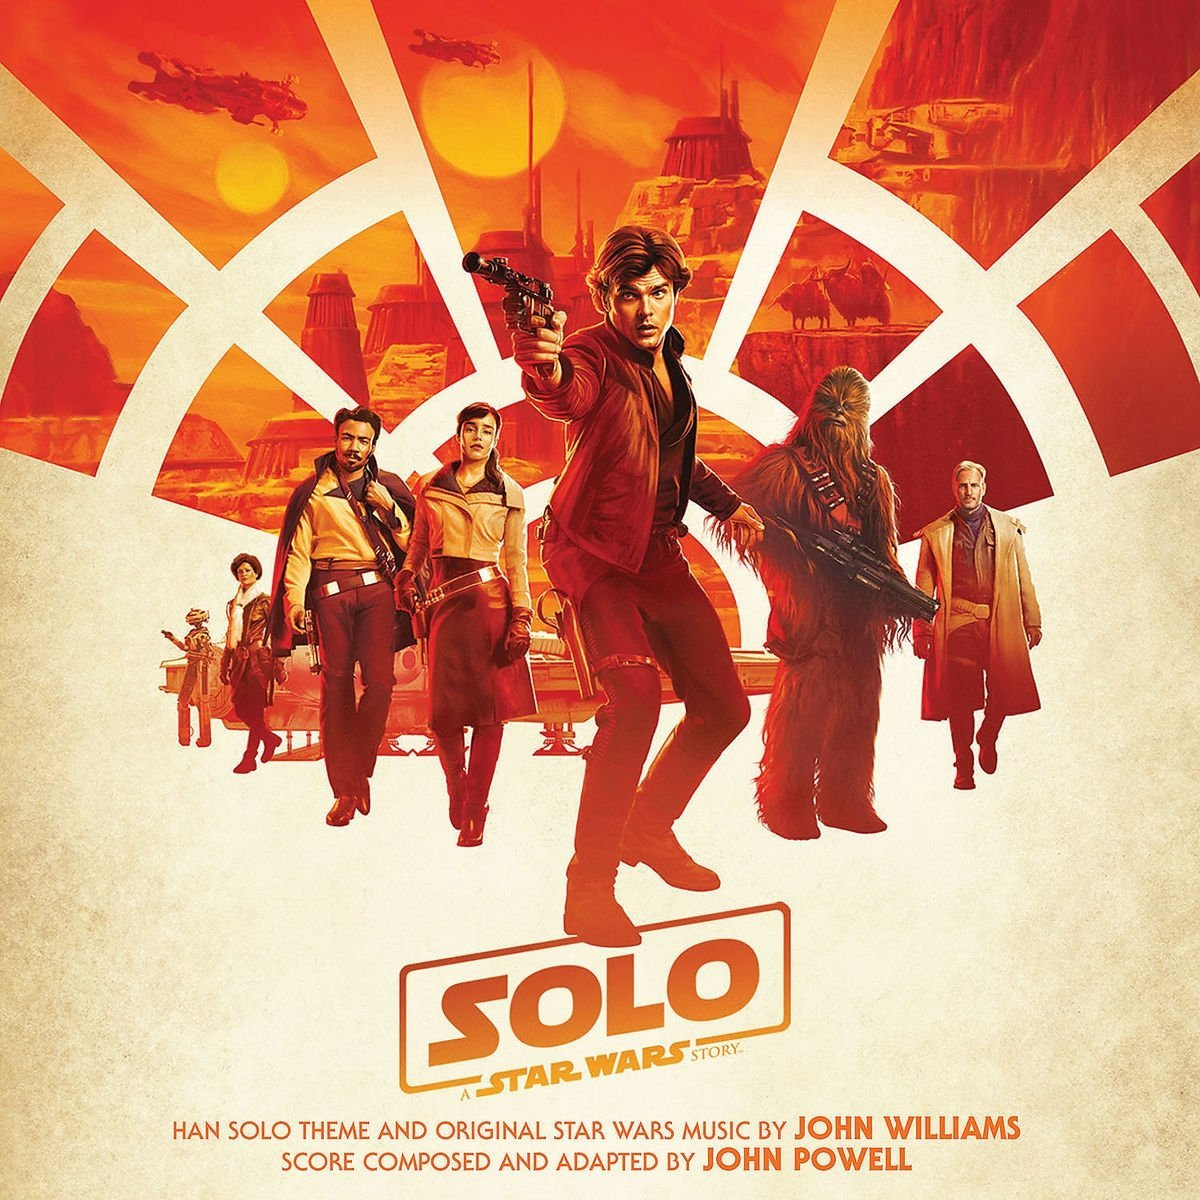 OUT NOW: 'SOLO: A STAR WARS STORY' - THE ORIGINAL SOUNDTRACK